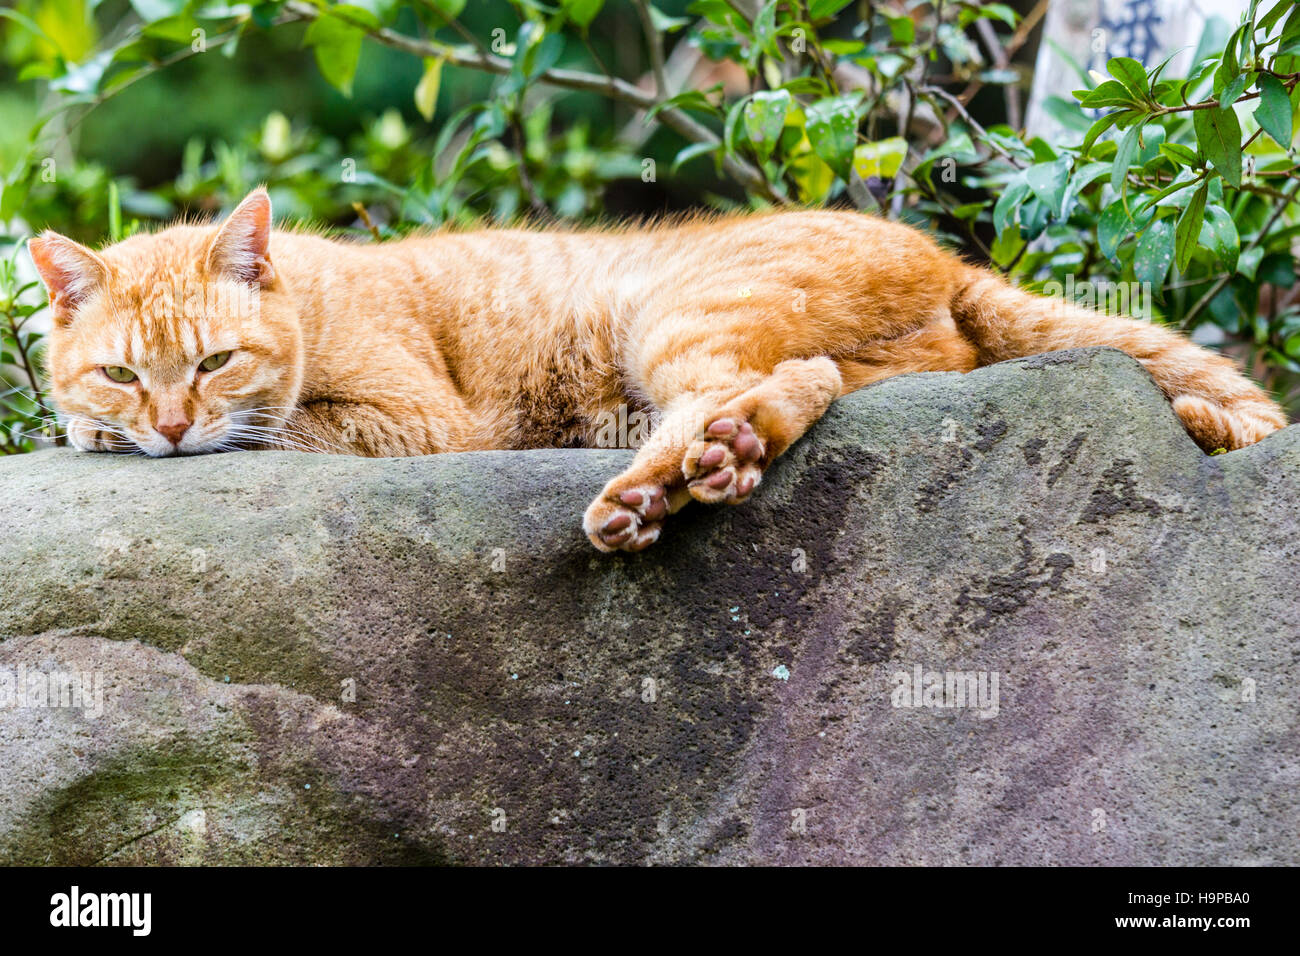 Japan, Akashi. Ginger cat resting by laying on top of large rock, stone. Side view, head facing. - Stock Image